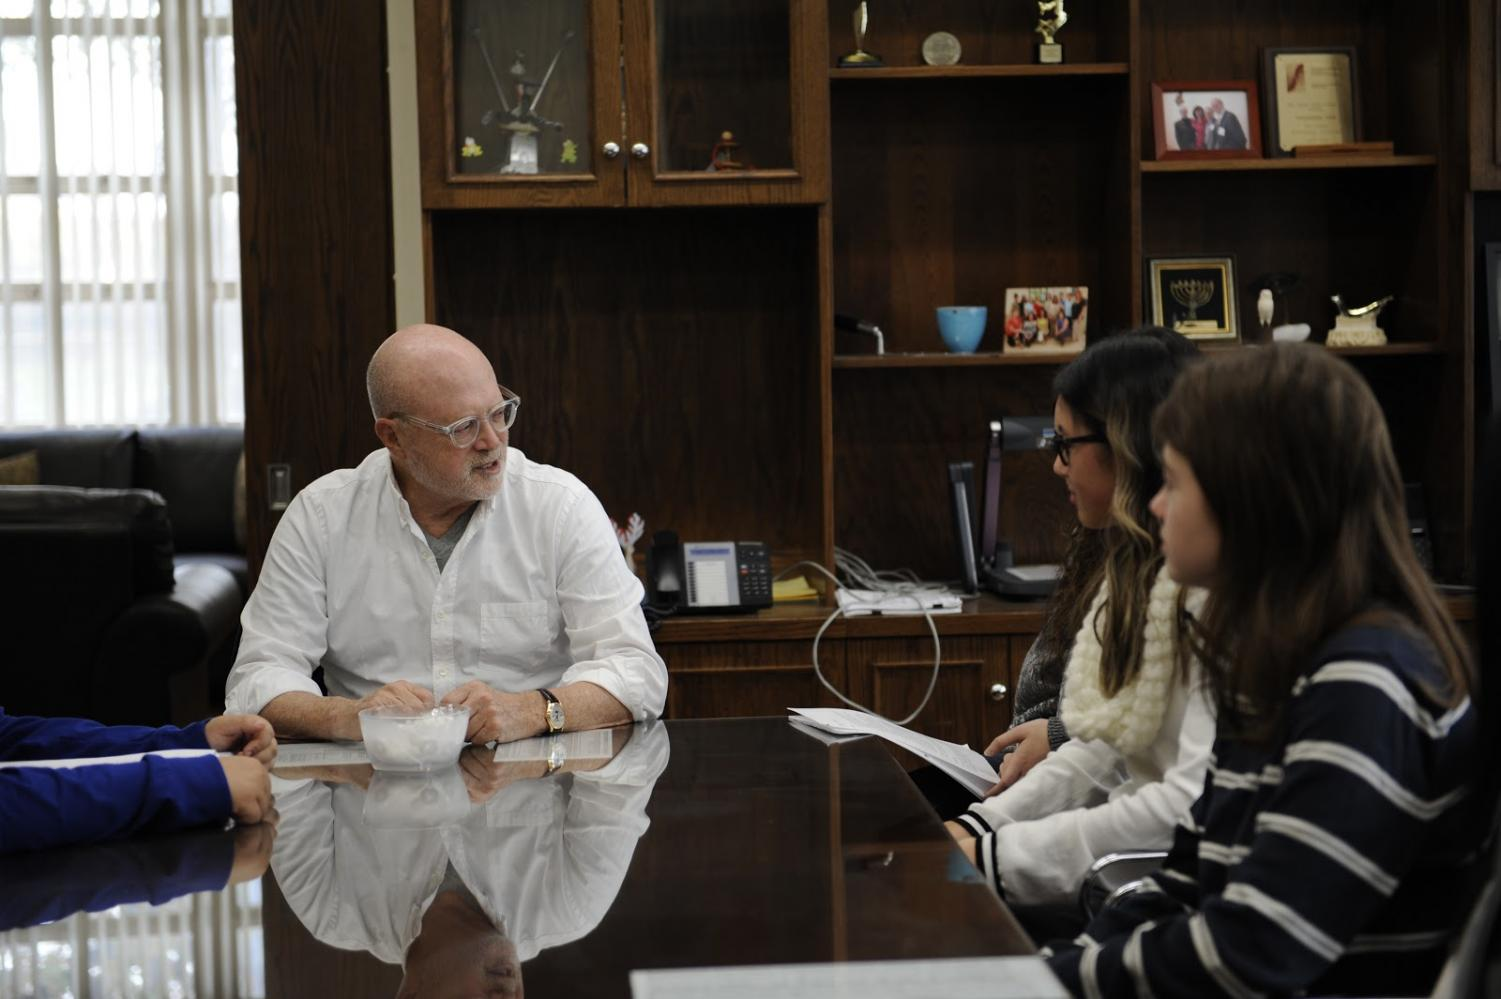 Mickey Drexler responds to questions posed by his interviewer, Sara Buklan, during a lunch with students.